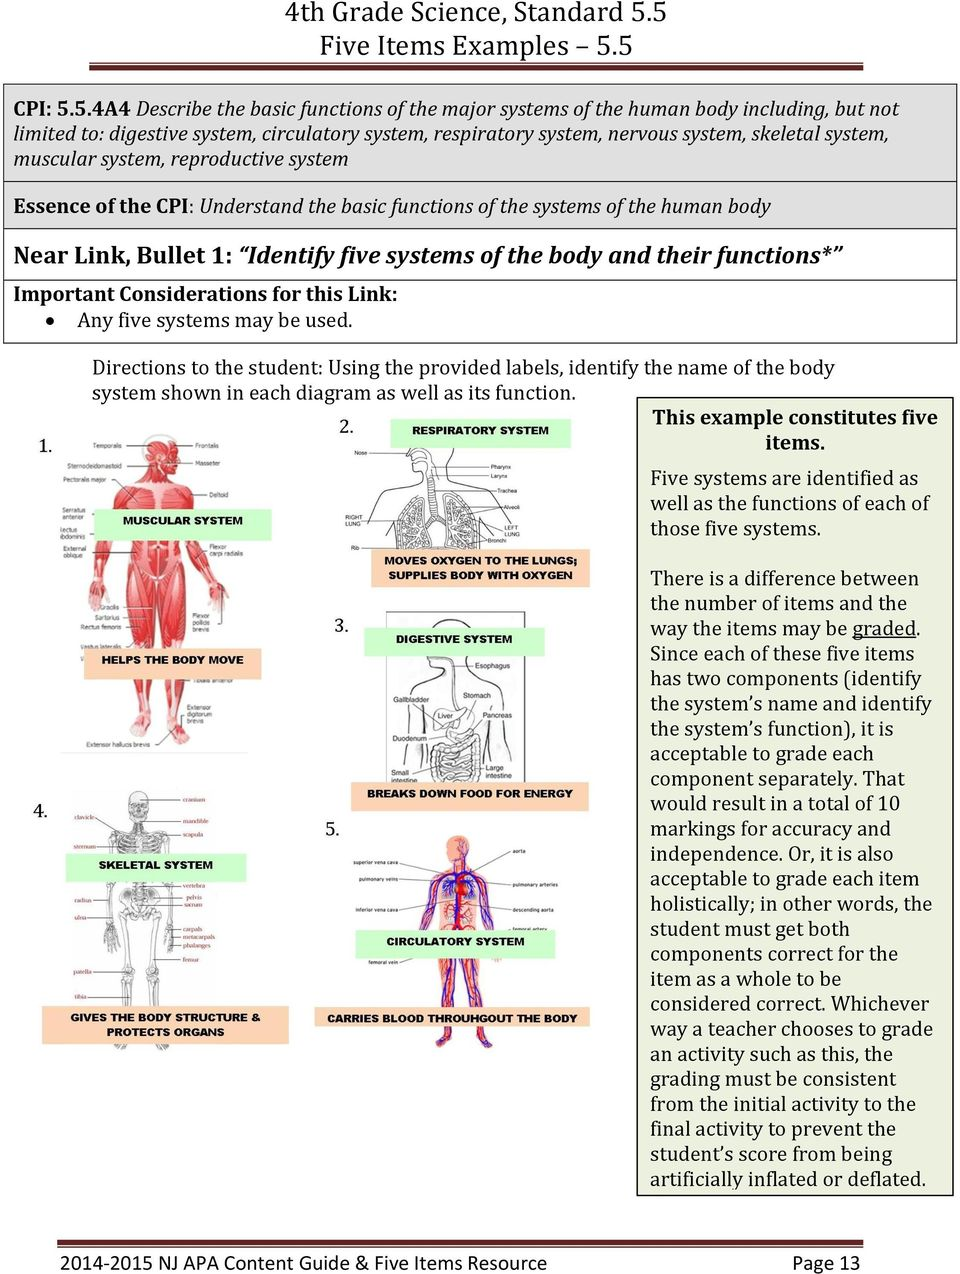 muscular system, reproductive system Essence of the CPI: Understand the basic functions of the systems of the human body Near Link, Bullet 1: Identify five systems of the body and their functions*